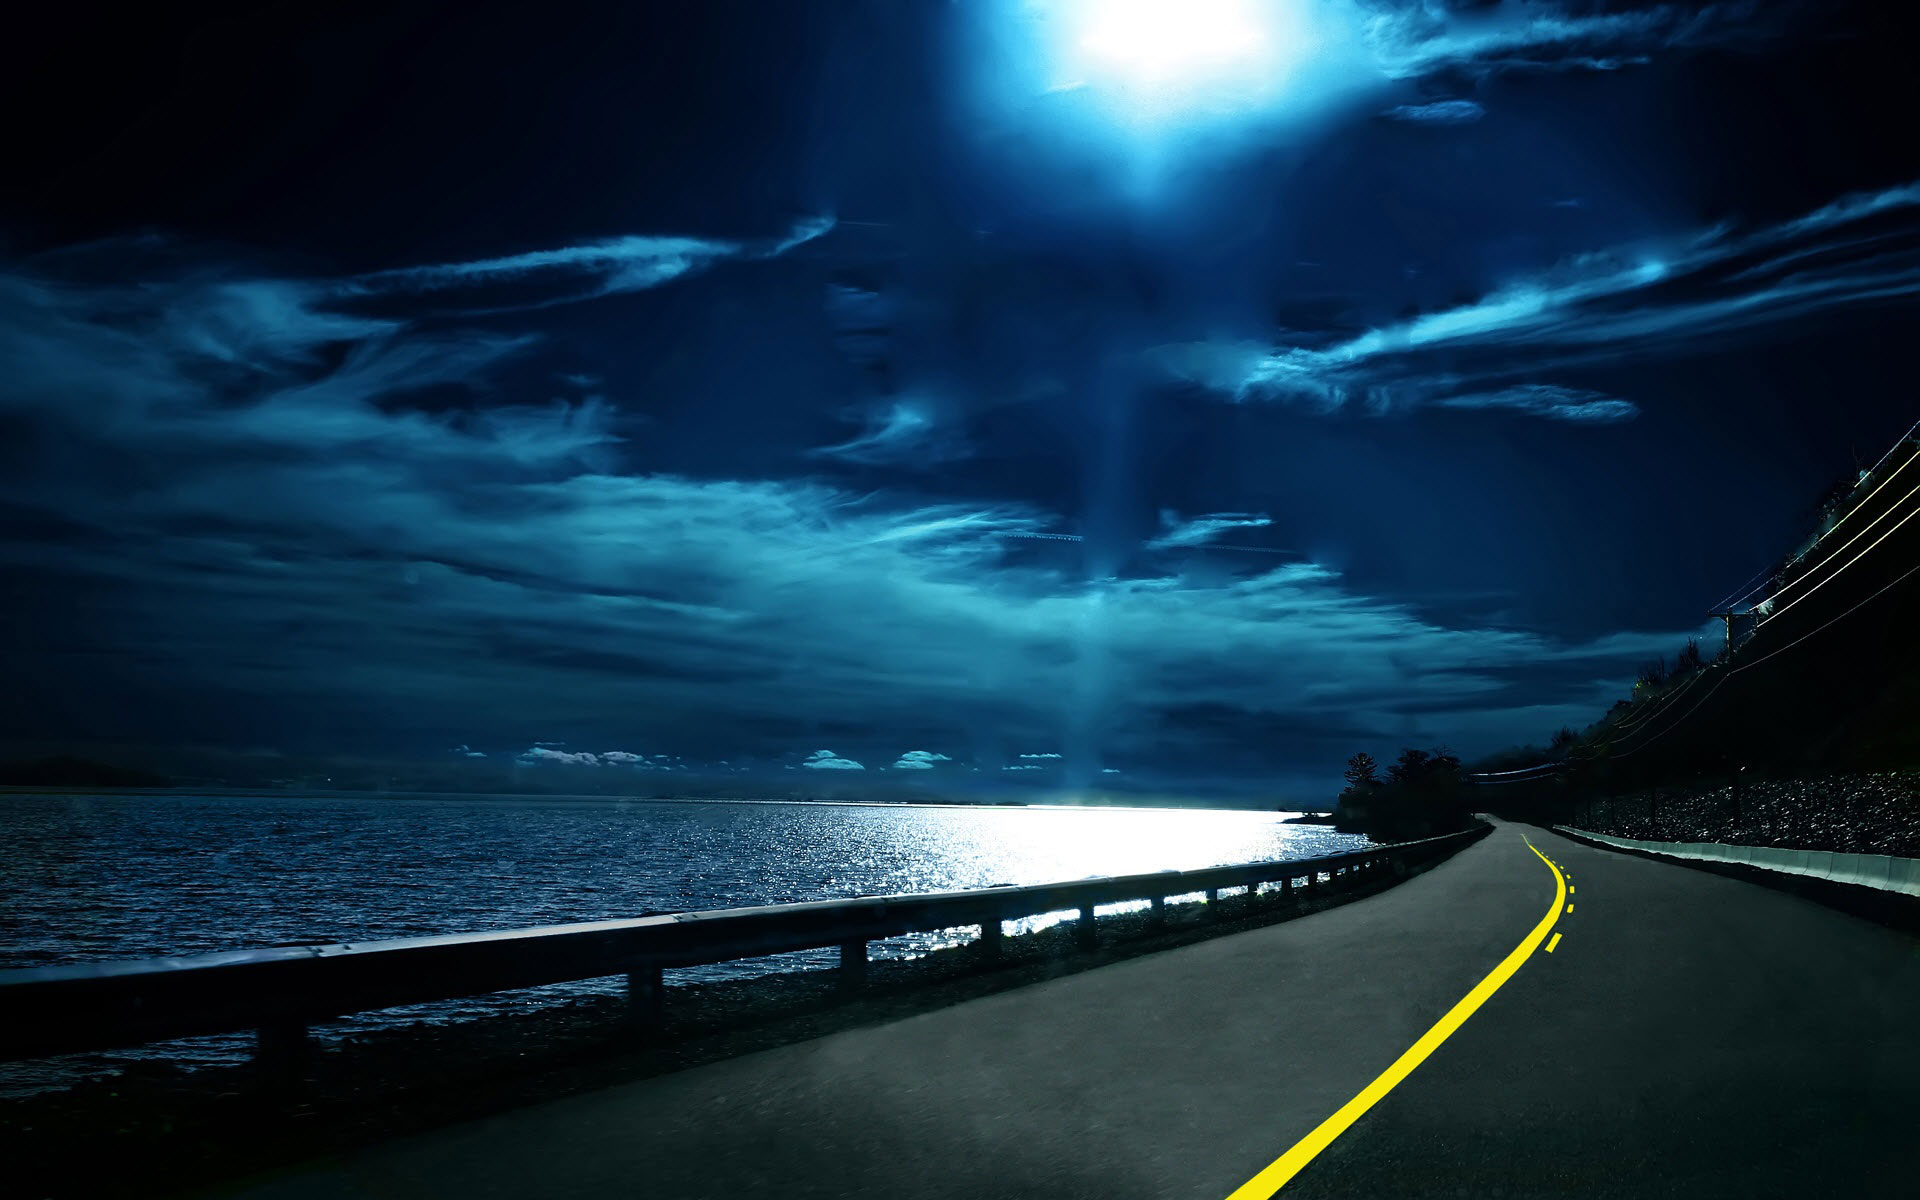 http://1.bp.blogspot.com/-vNdorayBAOg/UGtwwJi-dgI/AAAAAAAABso/kp_IBwbEFaU/s1920/highway_at_night_hd_widescreen_wallpapers_1920x1200.jpeg